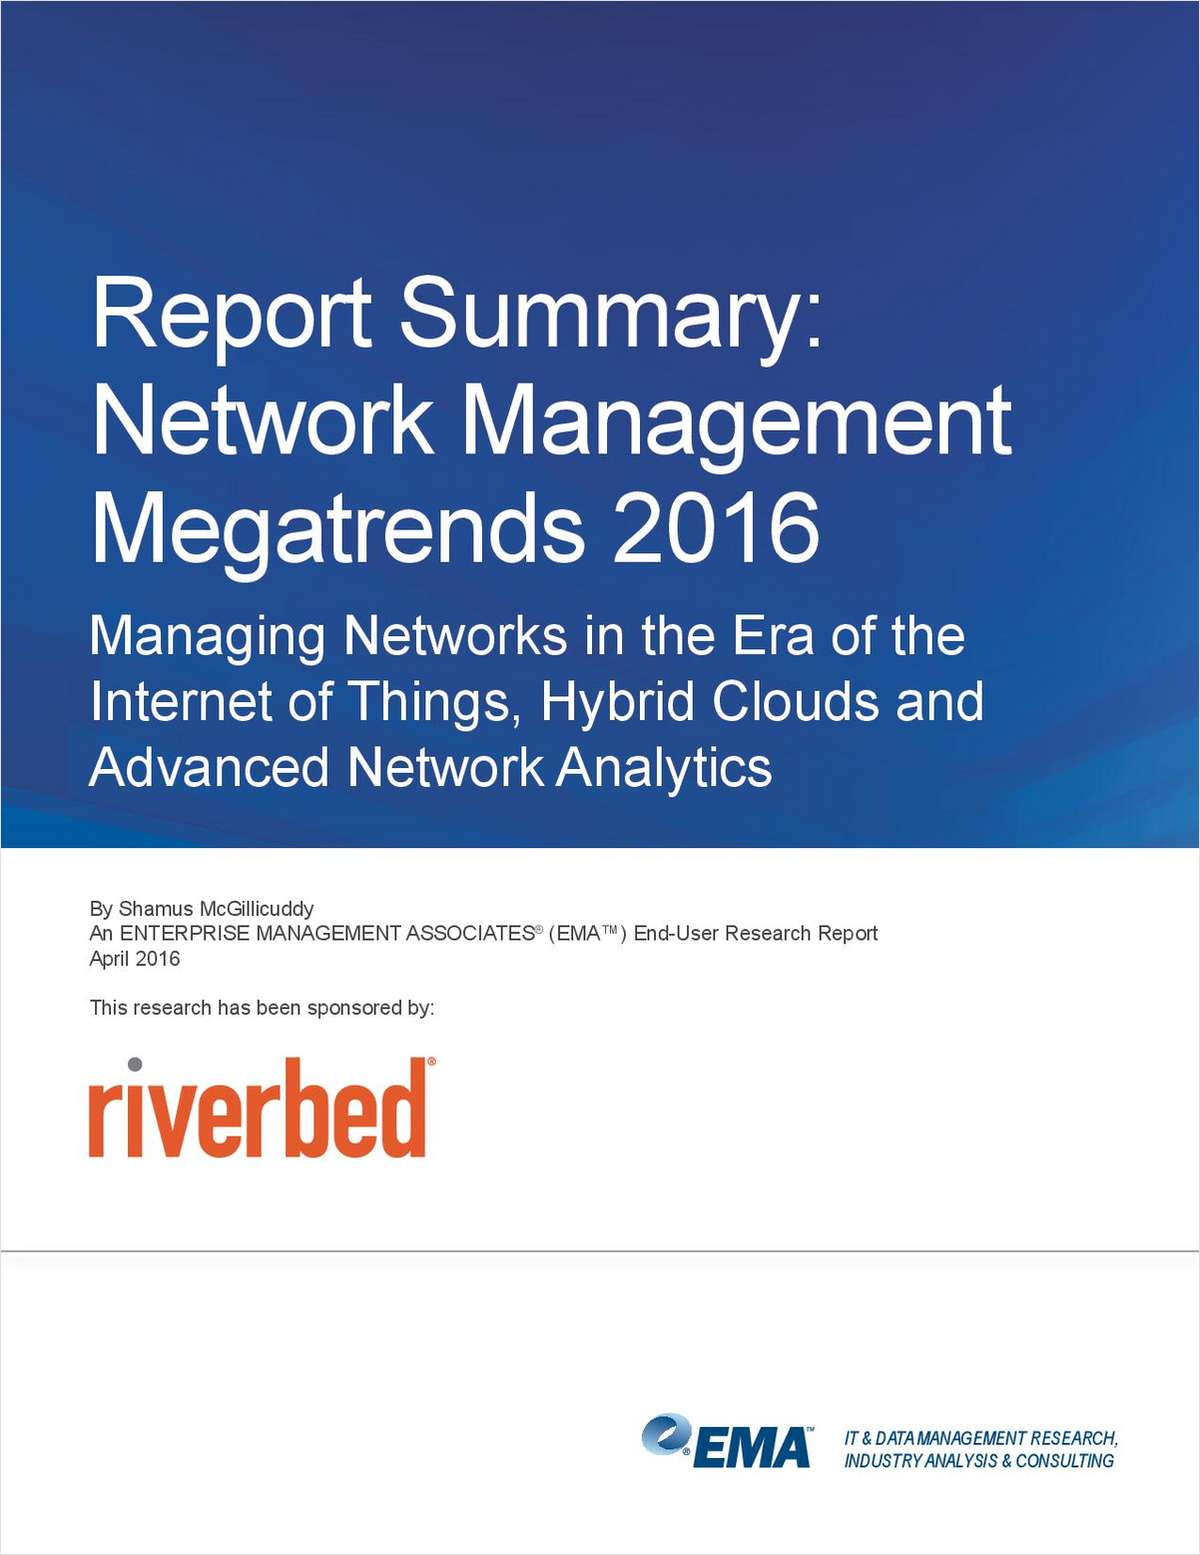 Enterprise Management Associates: Network Management Megatrends